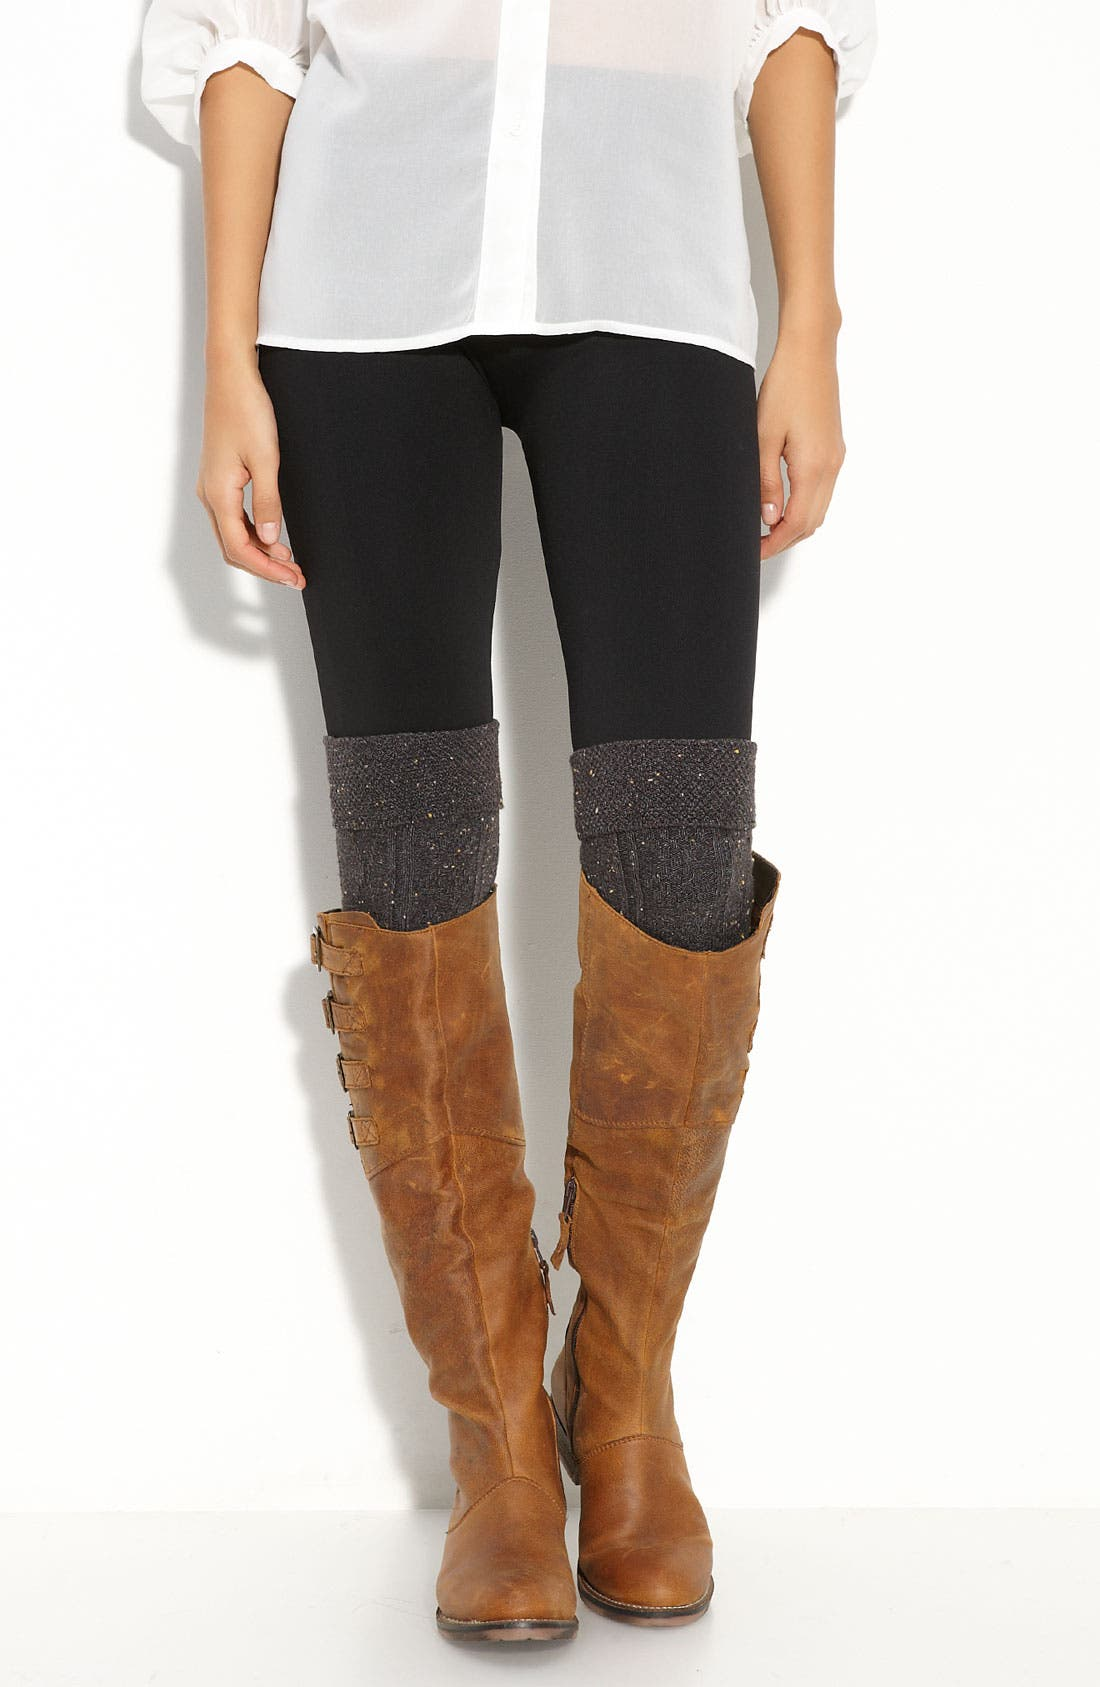 Textured Over the Knee Socks,                             Main thumbnail 1, color,                             021